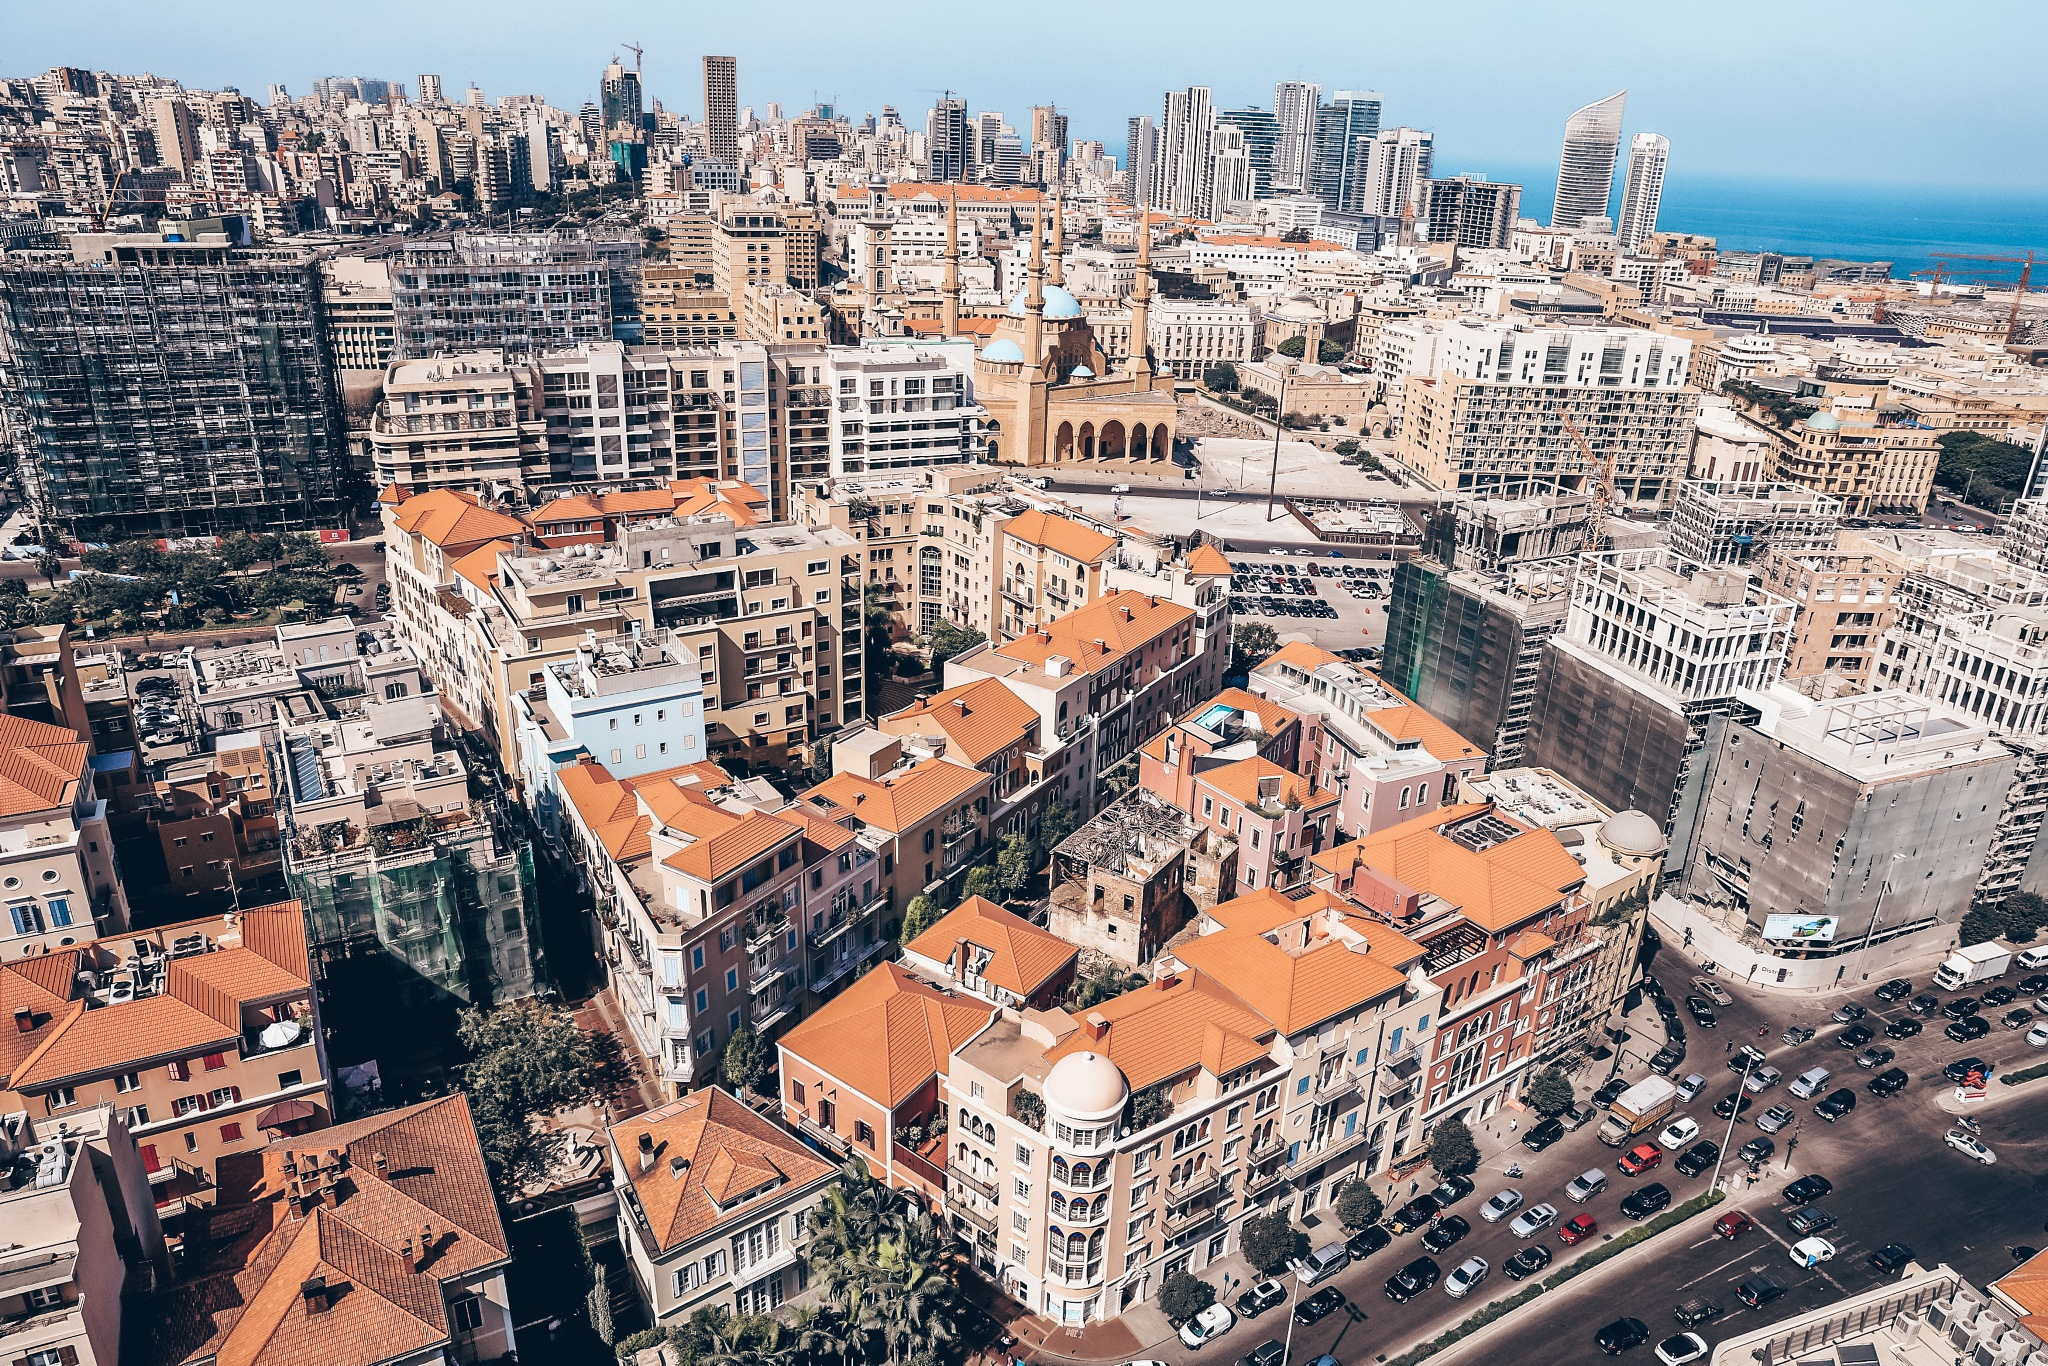 Downtown beirut by greatwhite